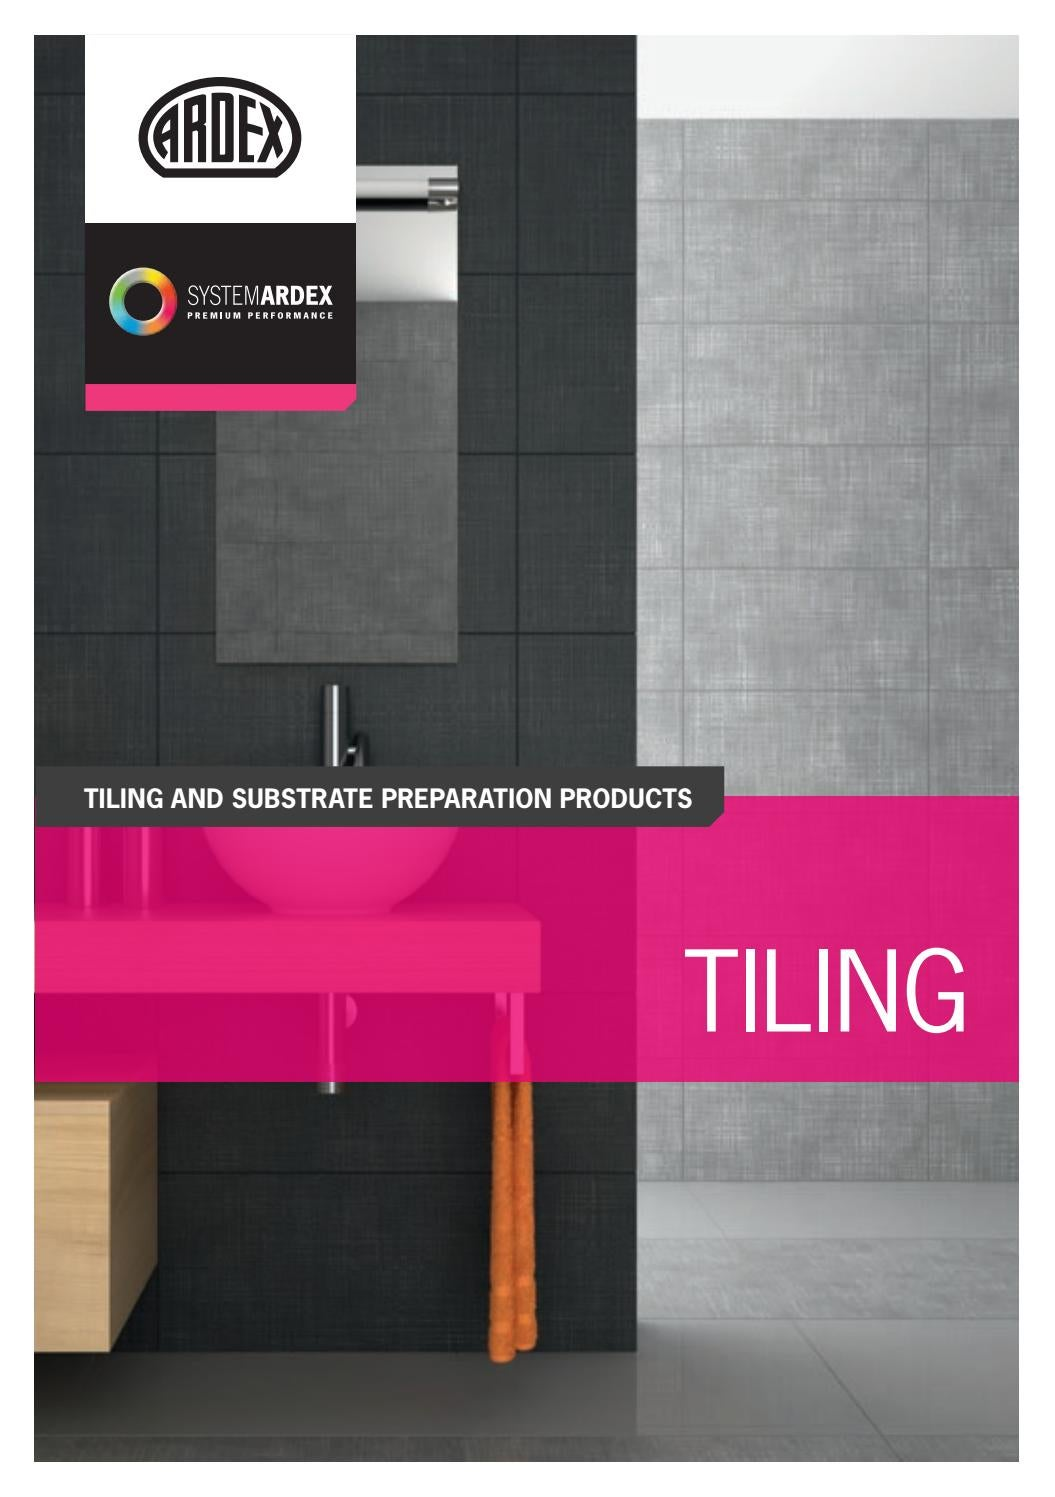 Ardex Tiling Product Brochure By Ardex Australia Issuu